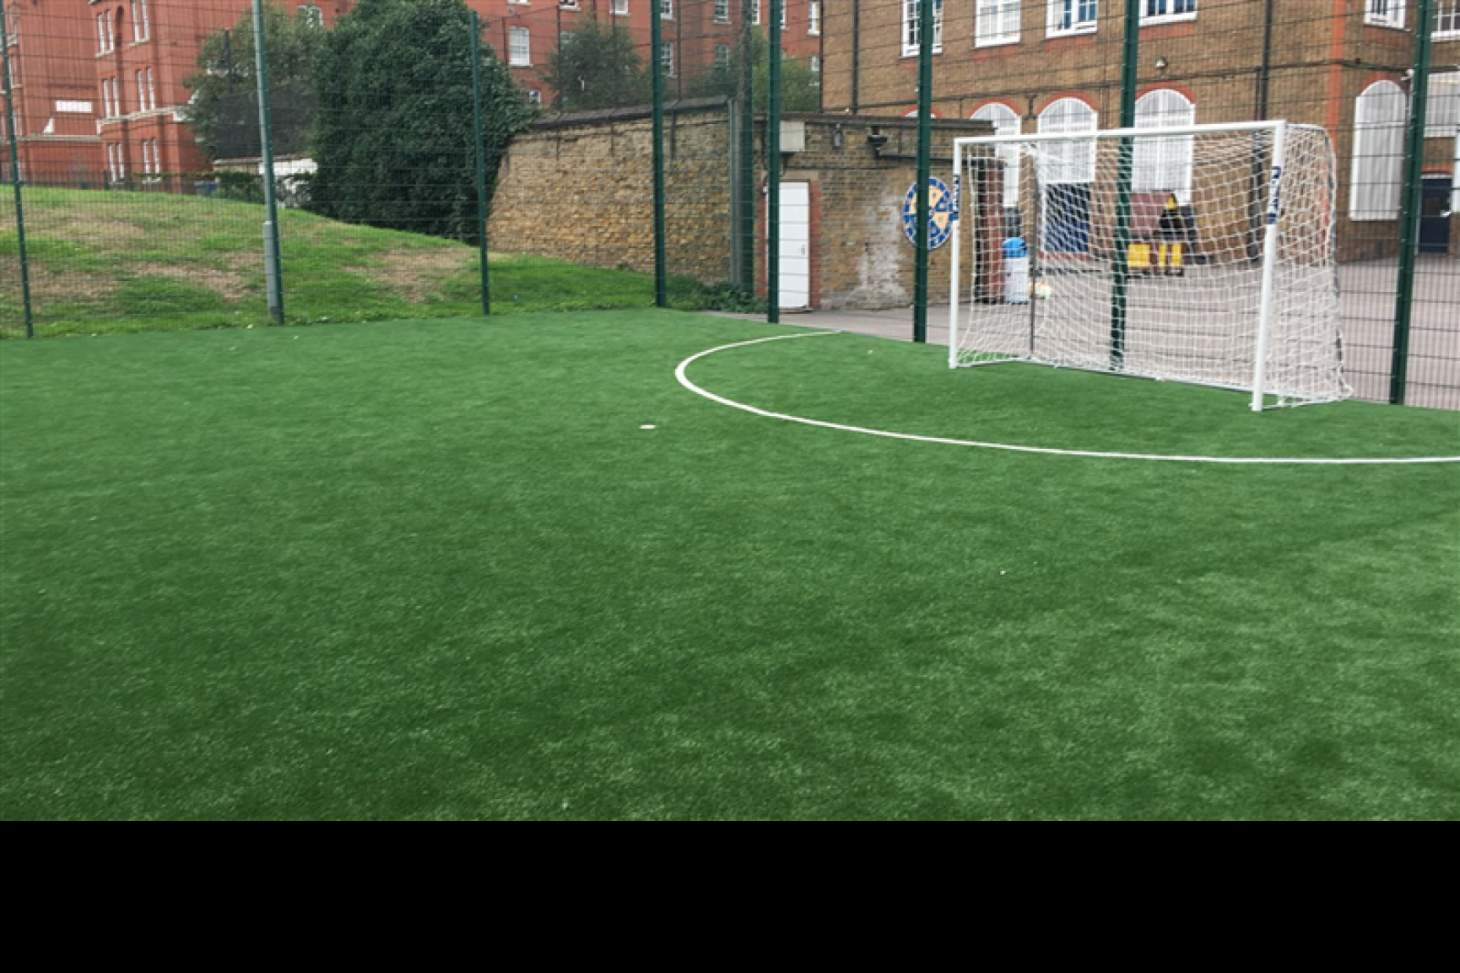 London Bridge Snowsfields 5 a side | 3G Astroturf football pitch